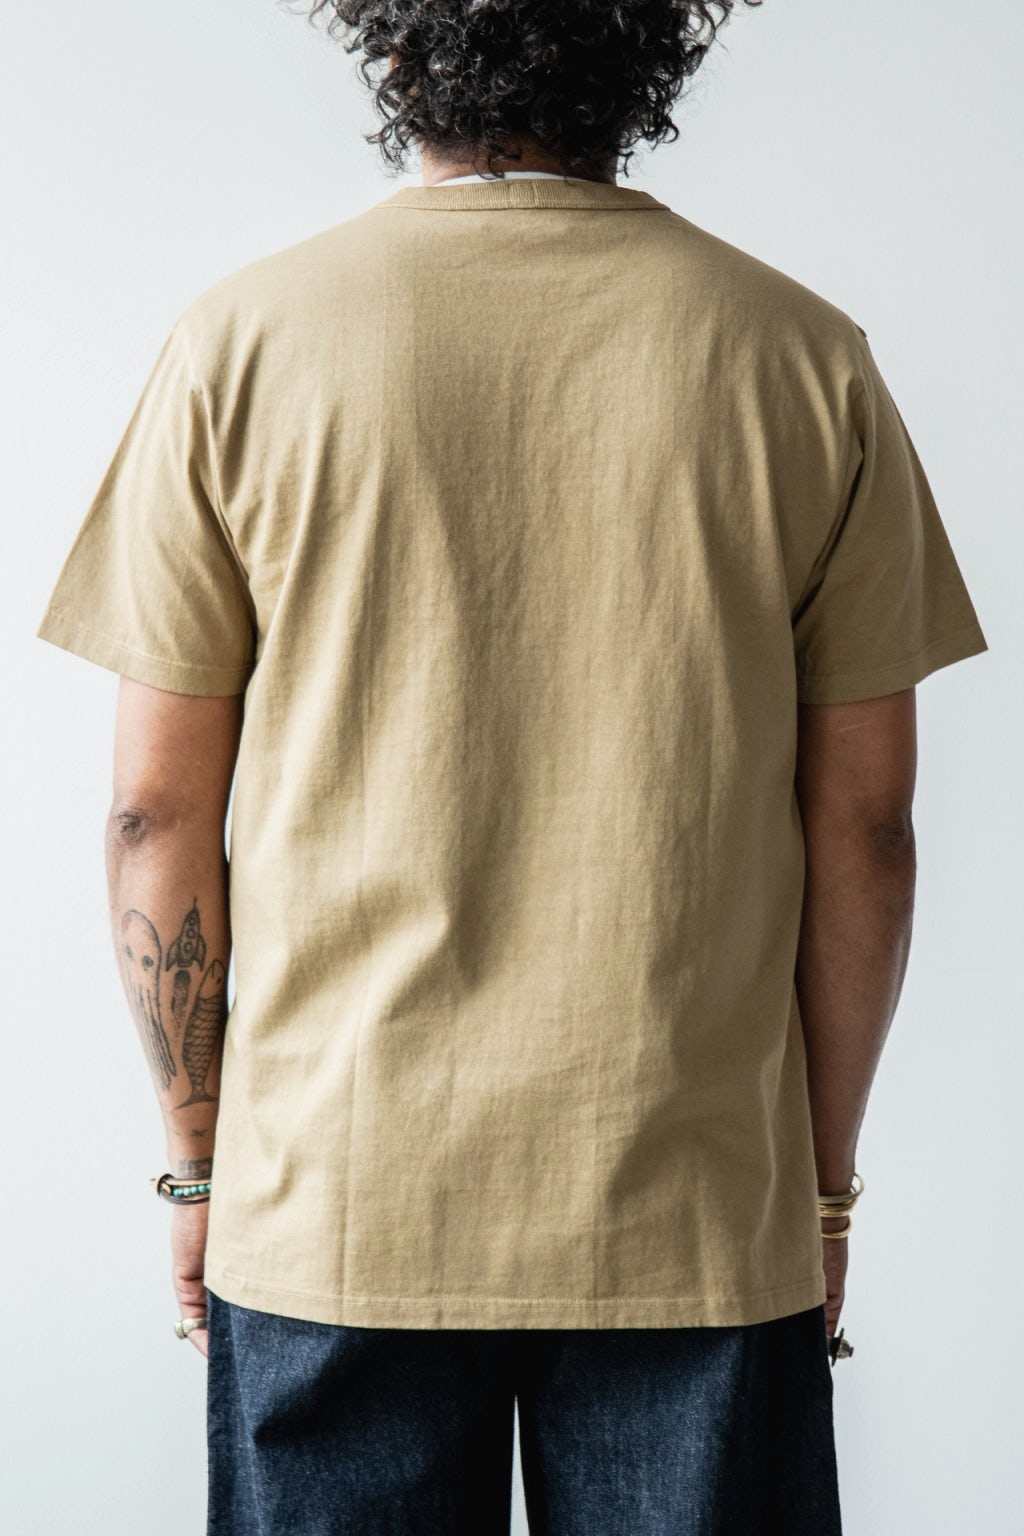 Lady White Co. Clark Pocket T-Shirt Khaki Fog